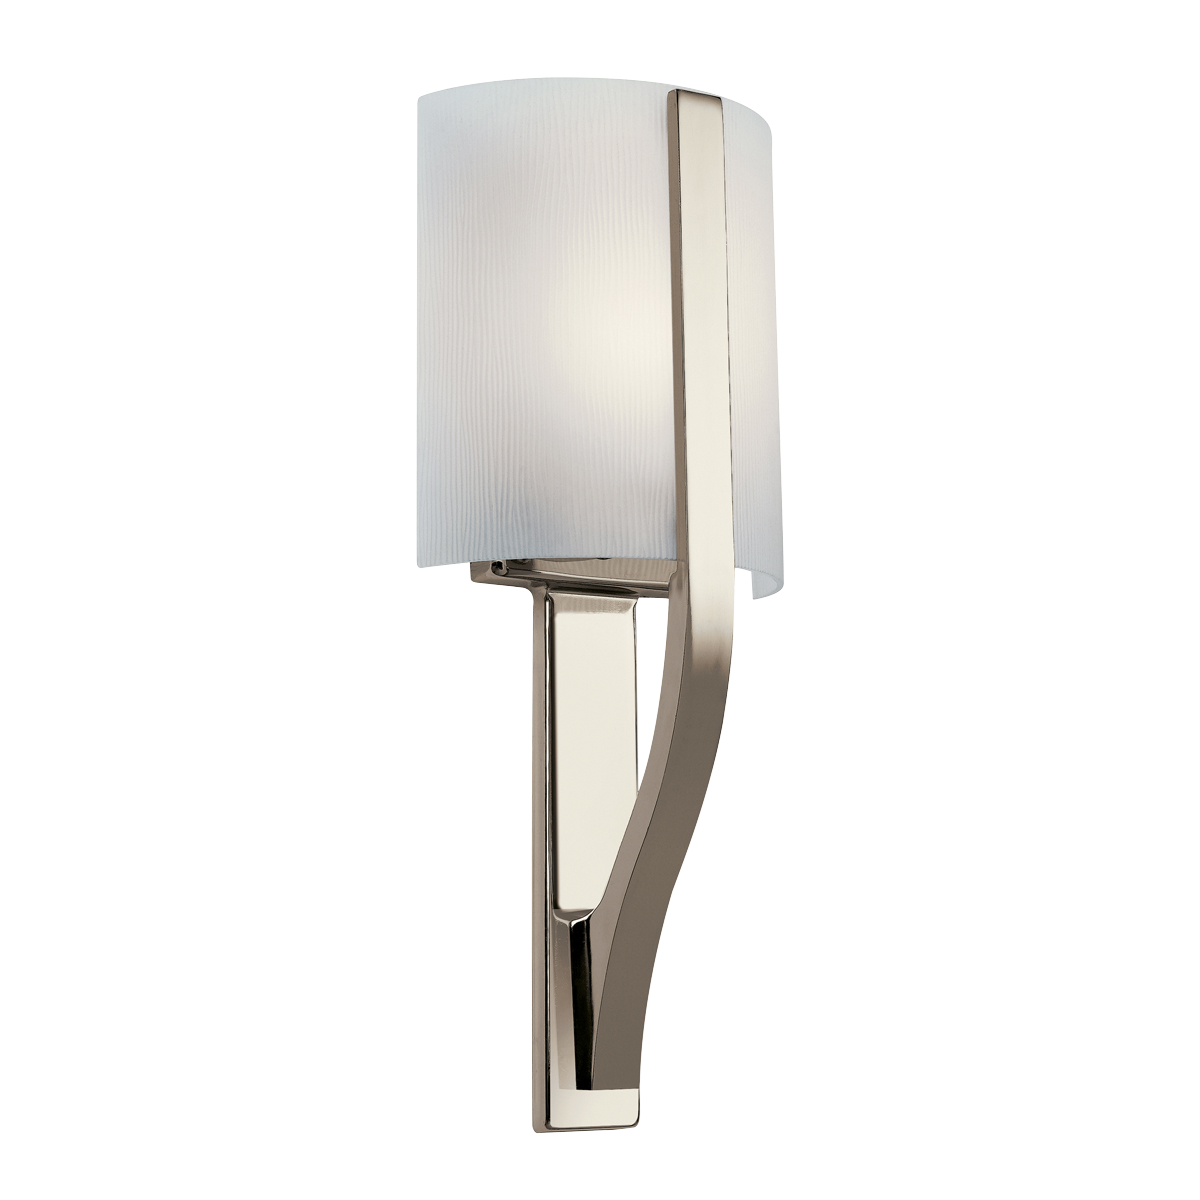 Freeport 1 light fluorescent wall sconce pn multi lamp freeport 1 light fluorescent wall sconce pn arubaitofo Choice Image